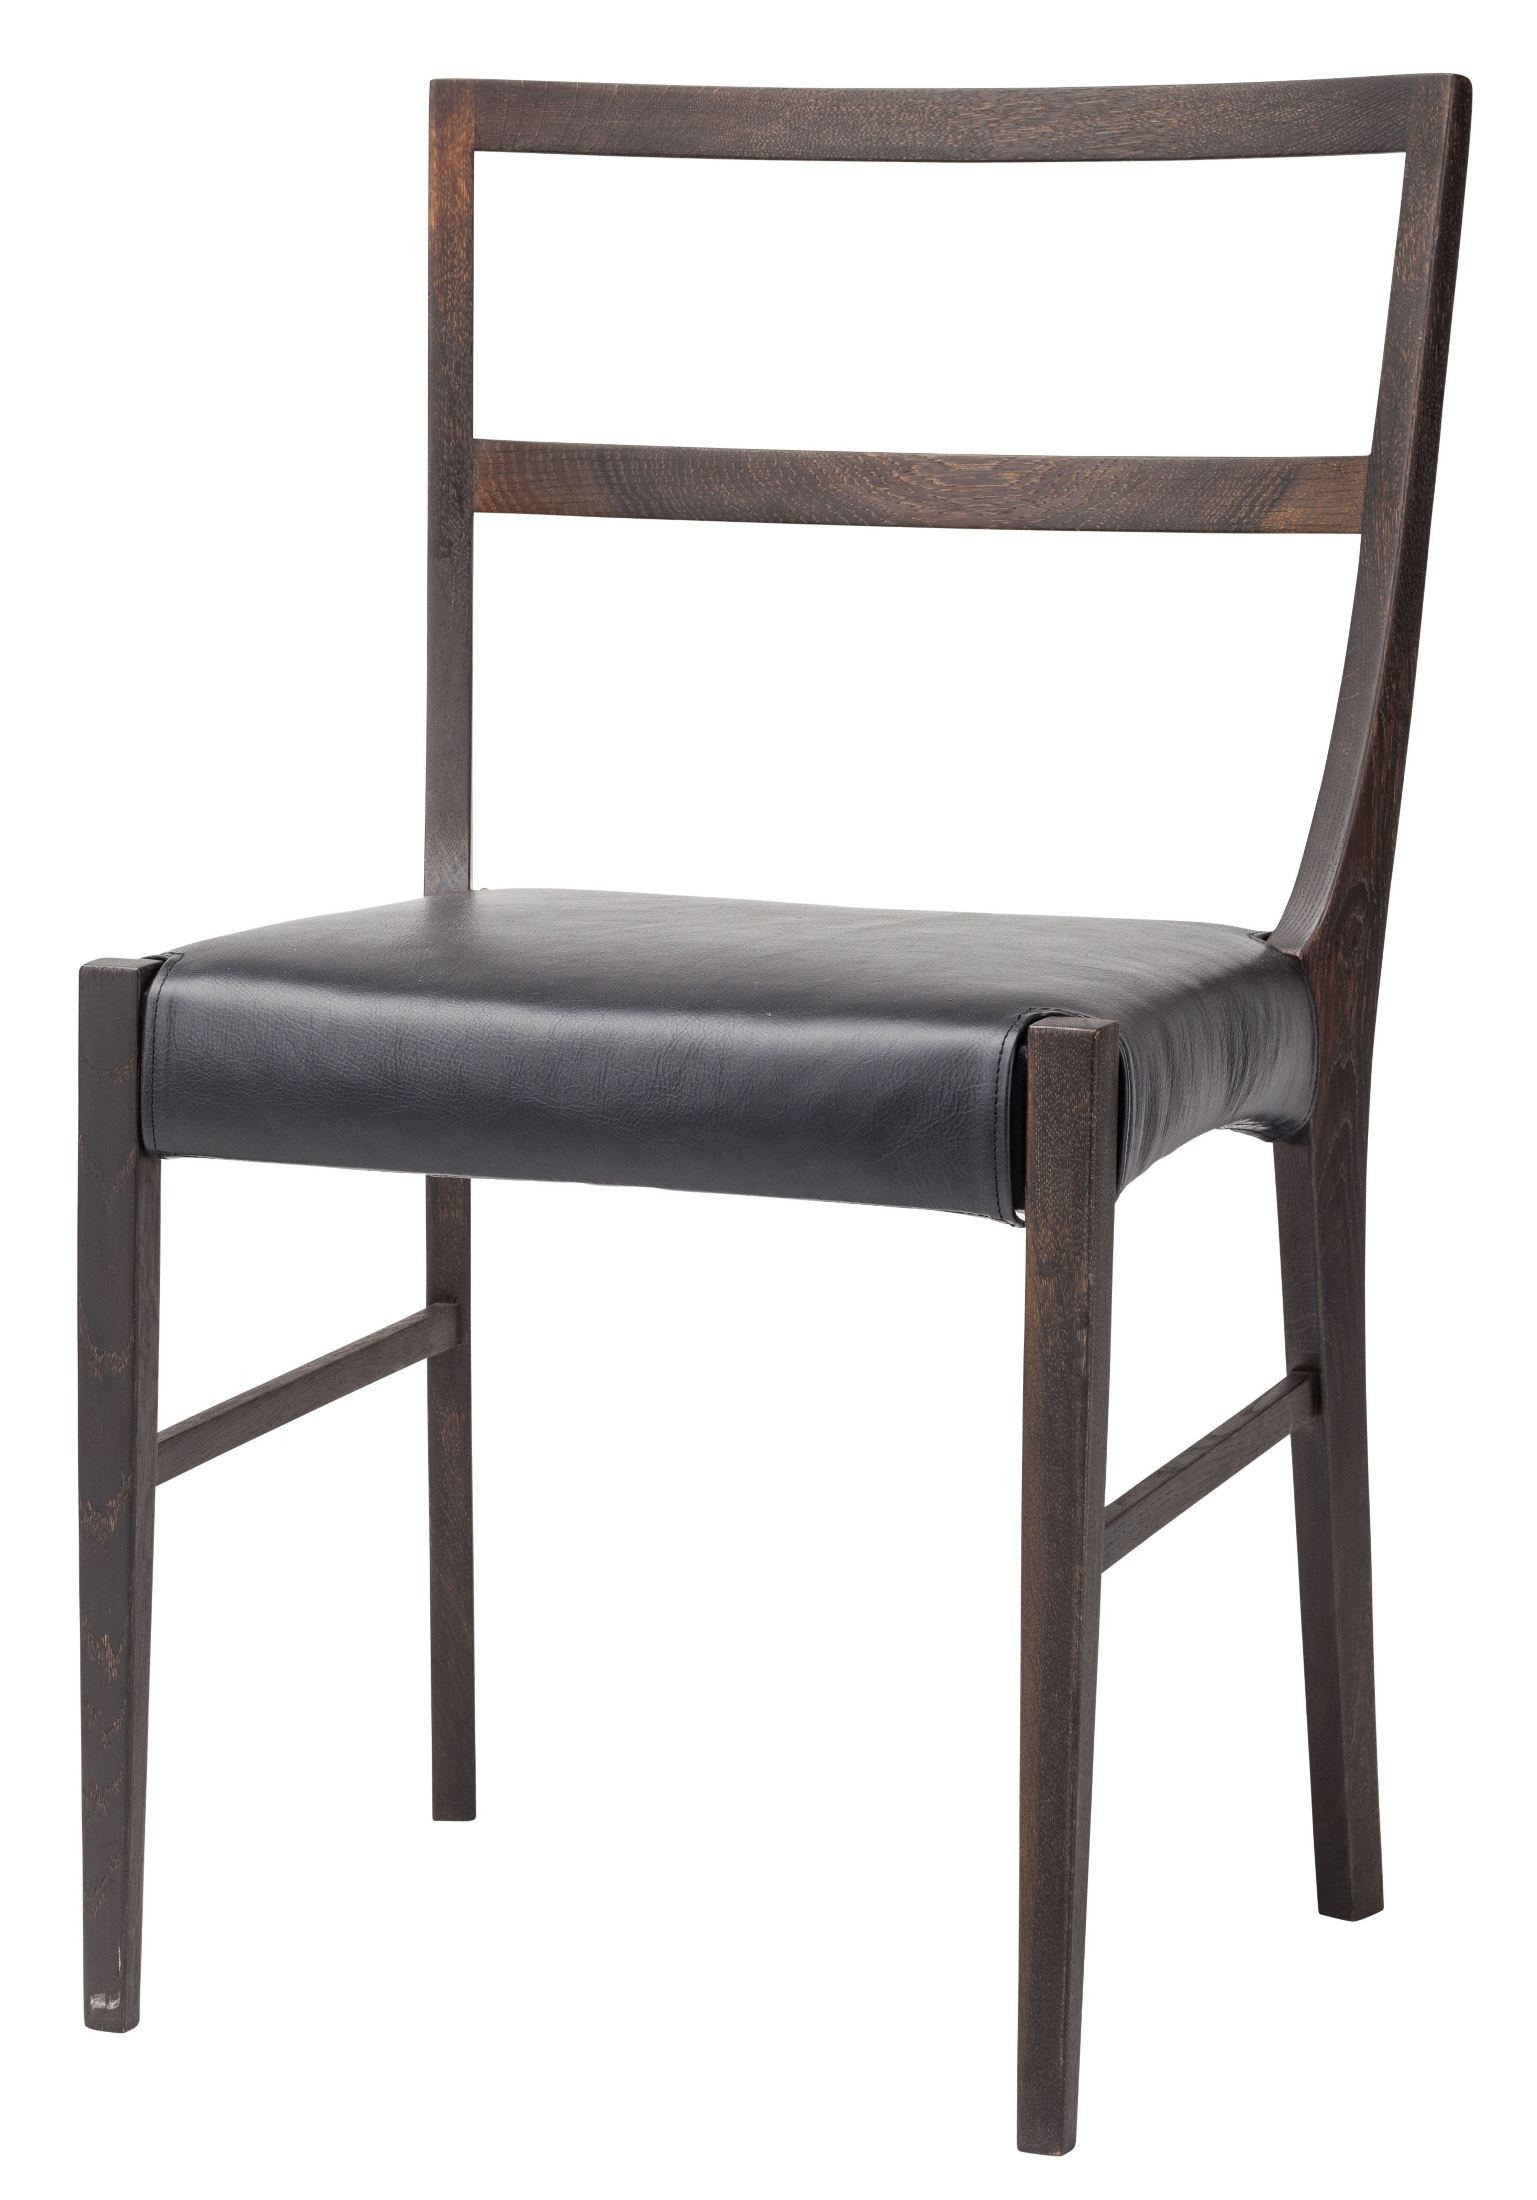 Hanna black leather dining chair from nuevo coleman for Black leather dining chairs